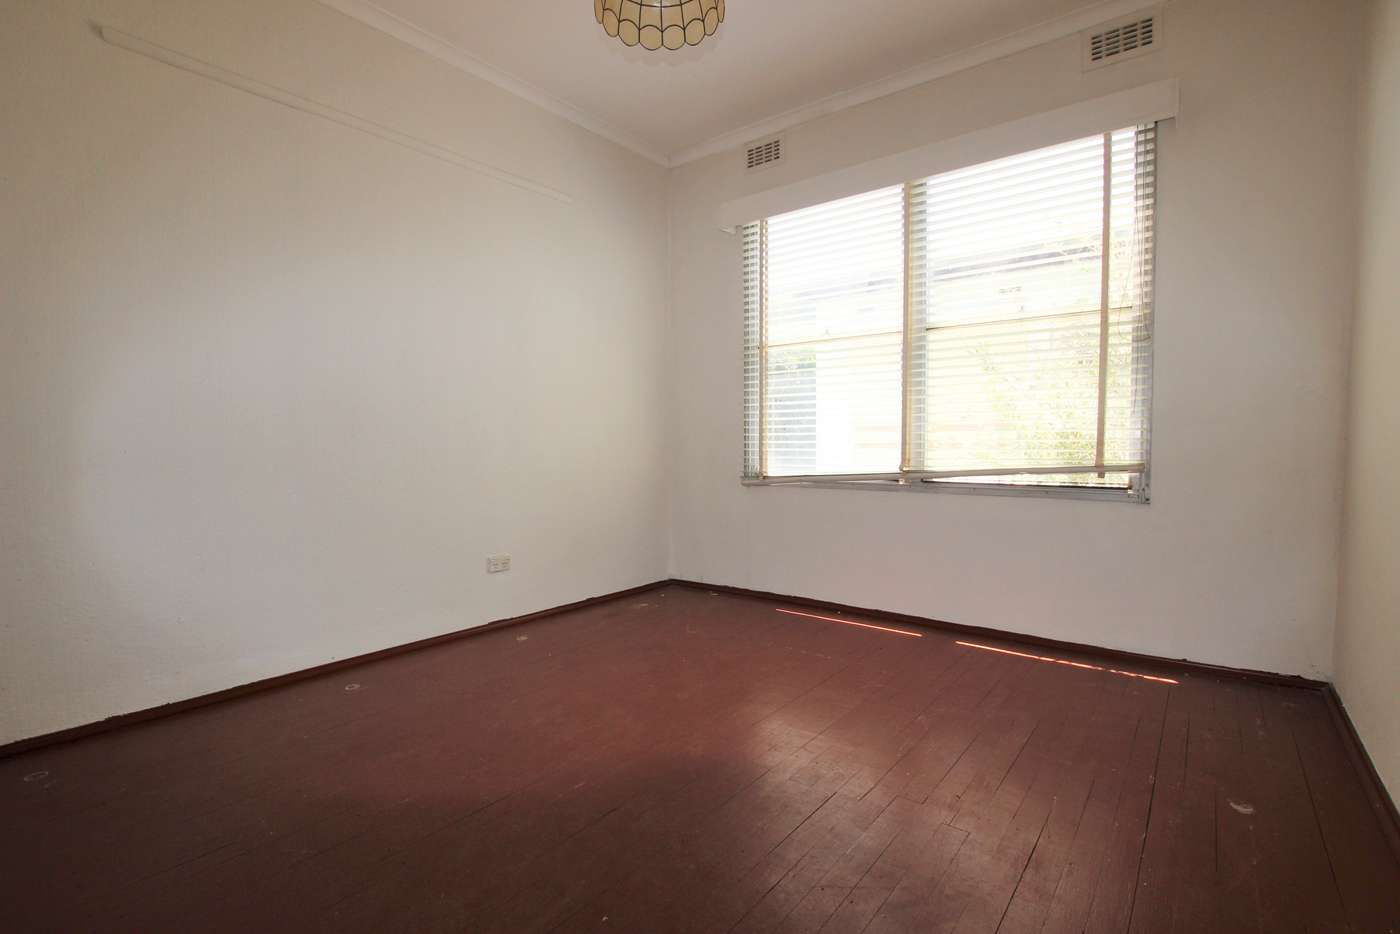 Fifth view of Homely house listing, 18 Mutton Road, Fawkner VIC 3060